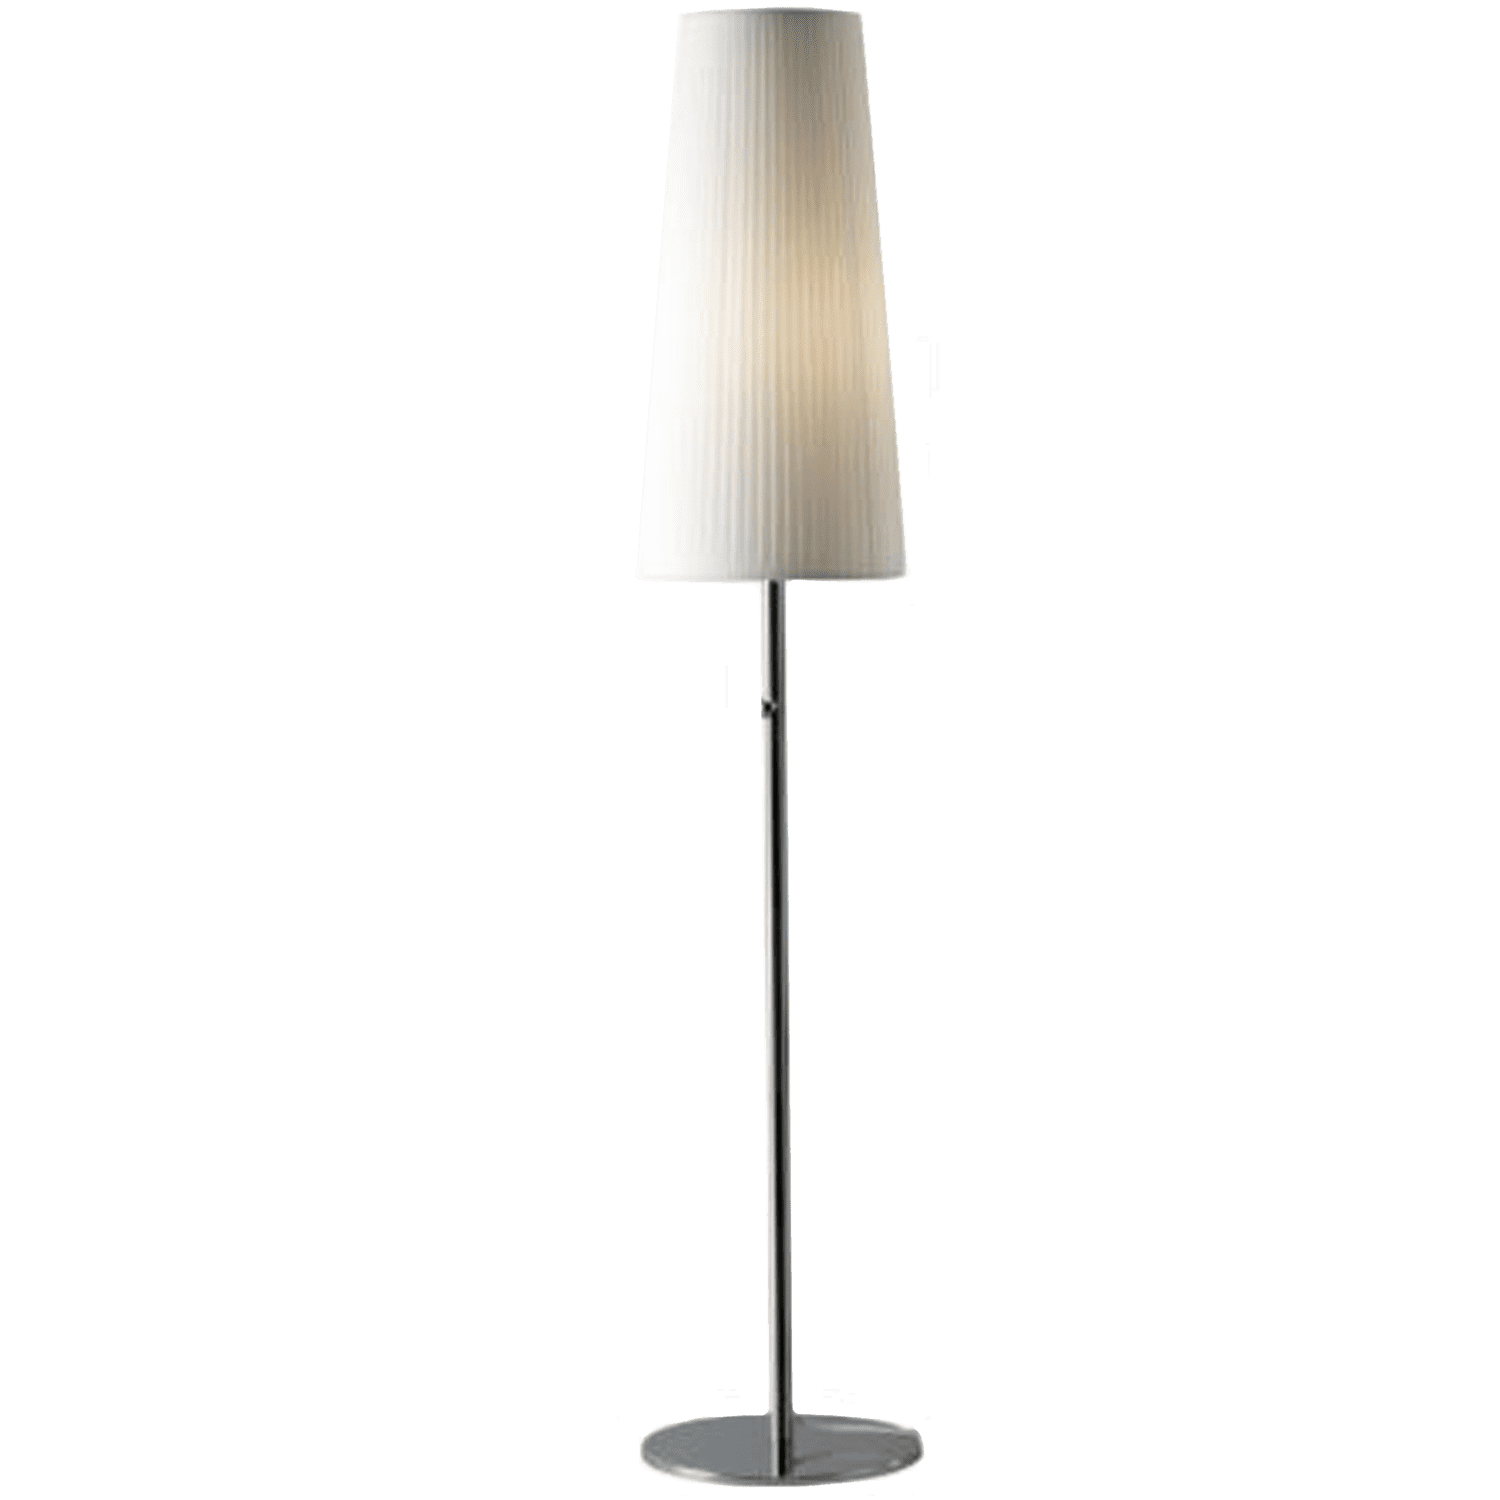 Stehlampe Dimmbar Stehlampe Dimmbar